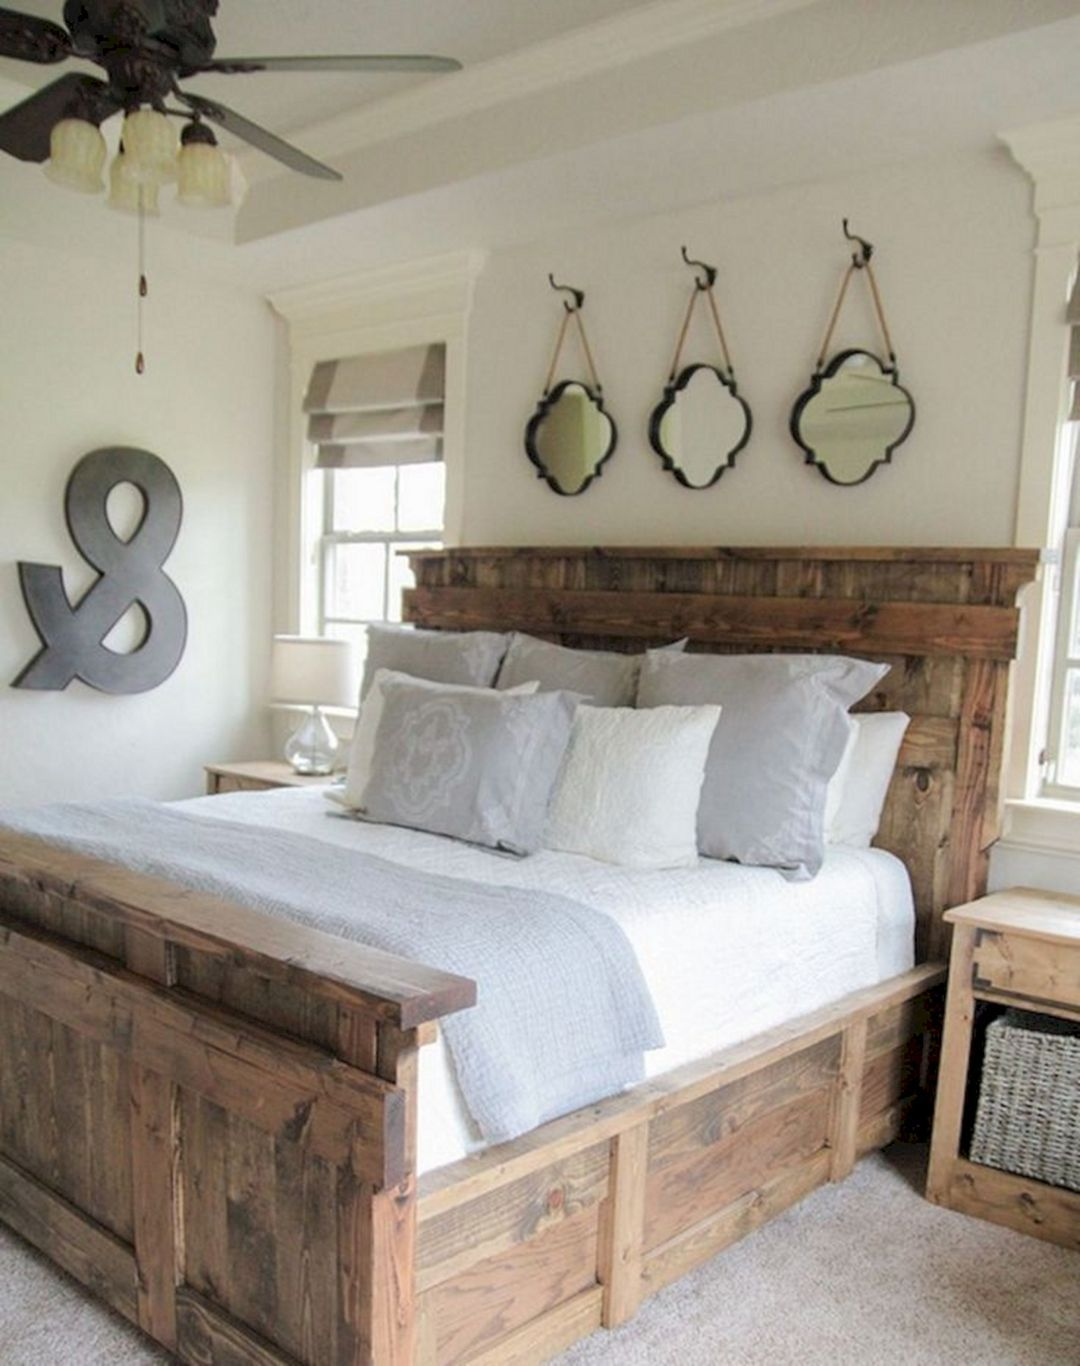 15 Rustic Bedroom Decorating Ideas That Will Make Your Bedroom